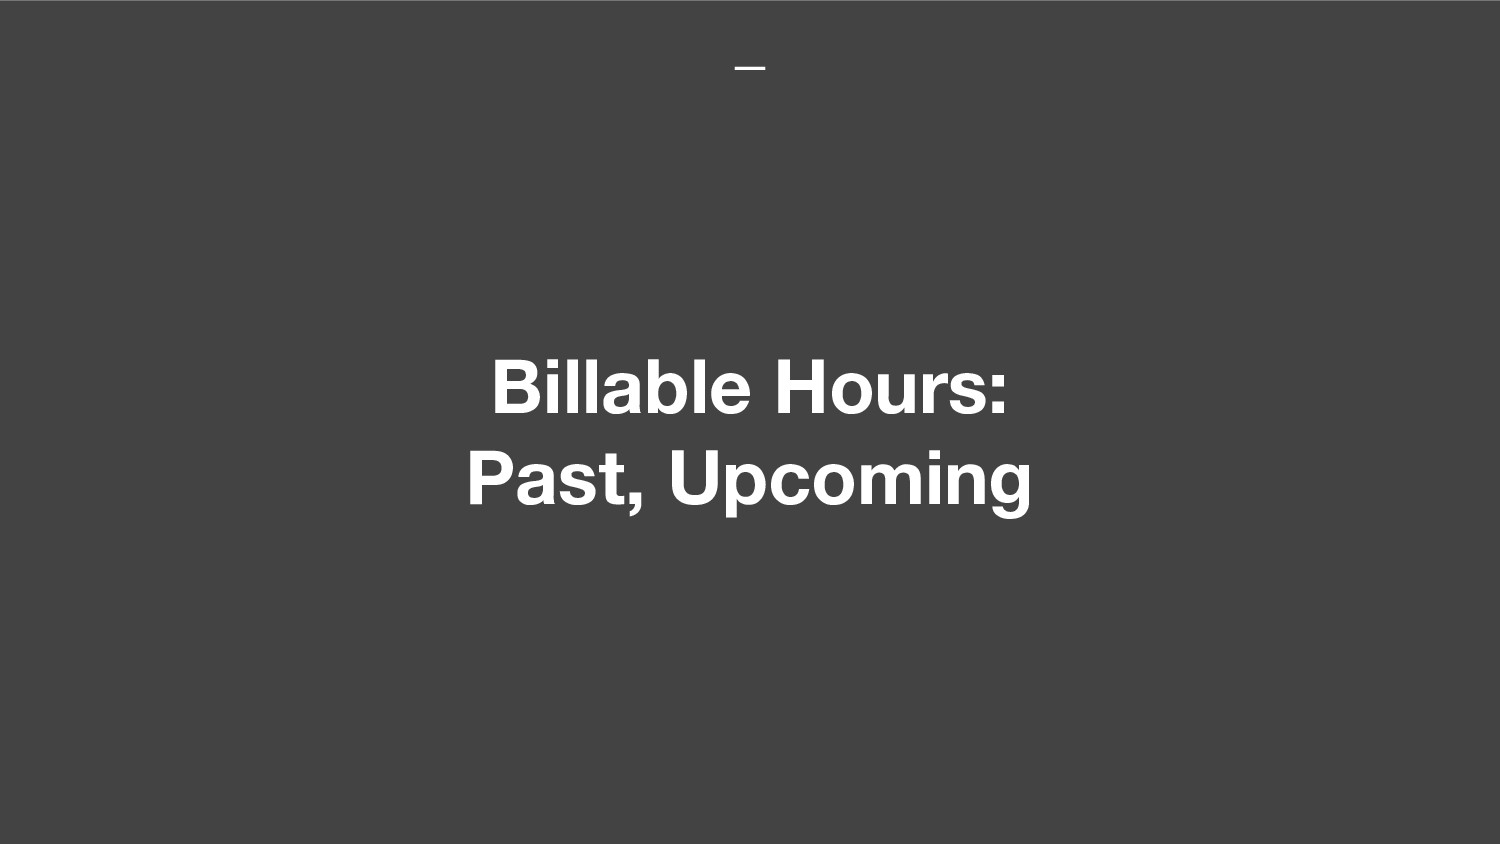 Billable Hours: Past, Upcoming